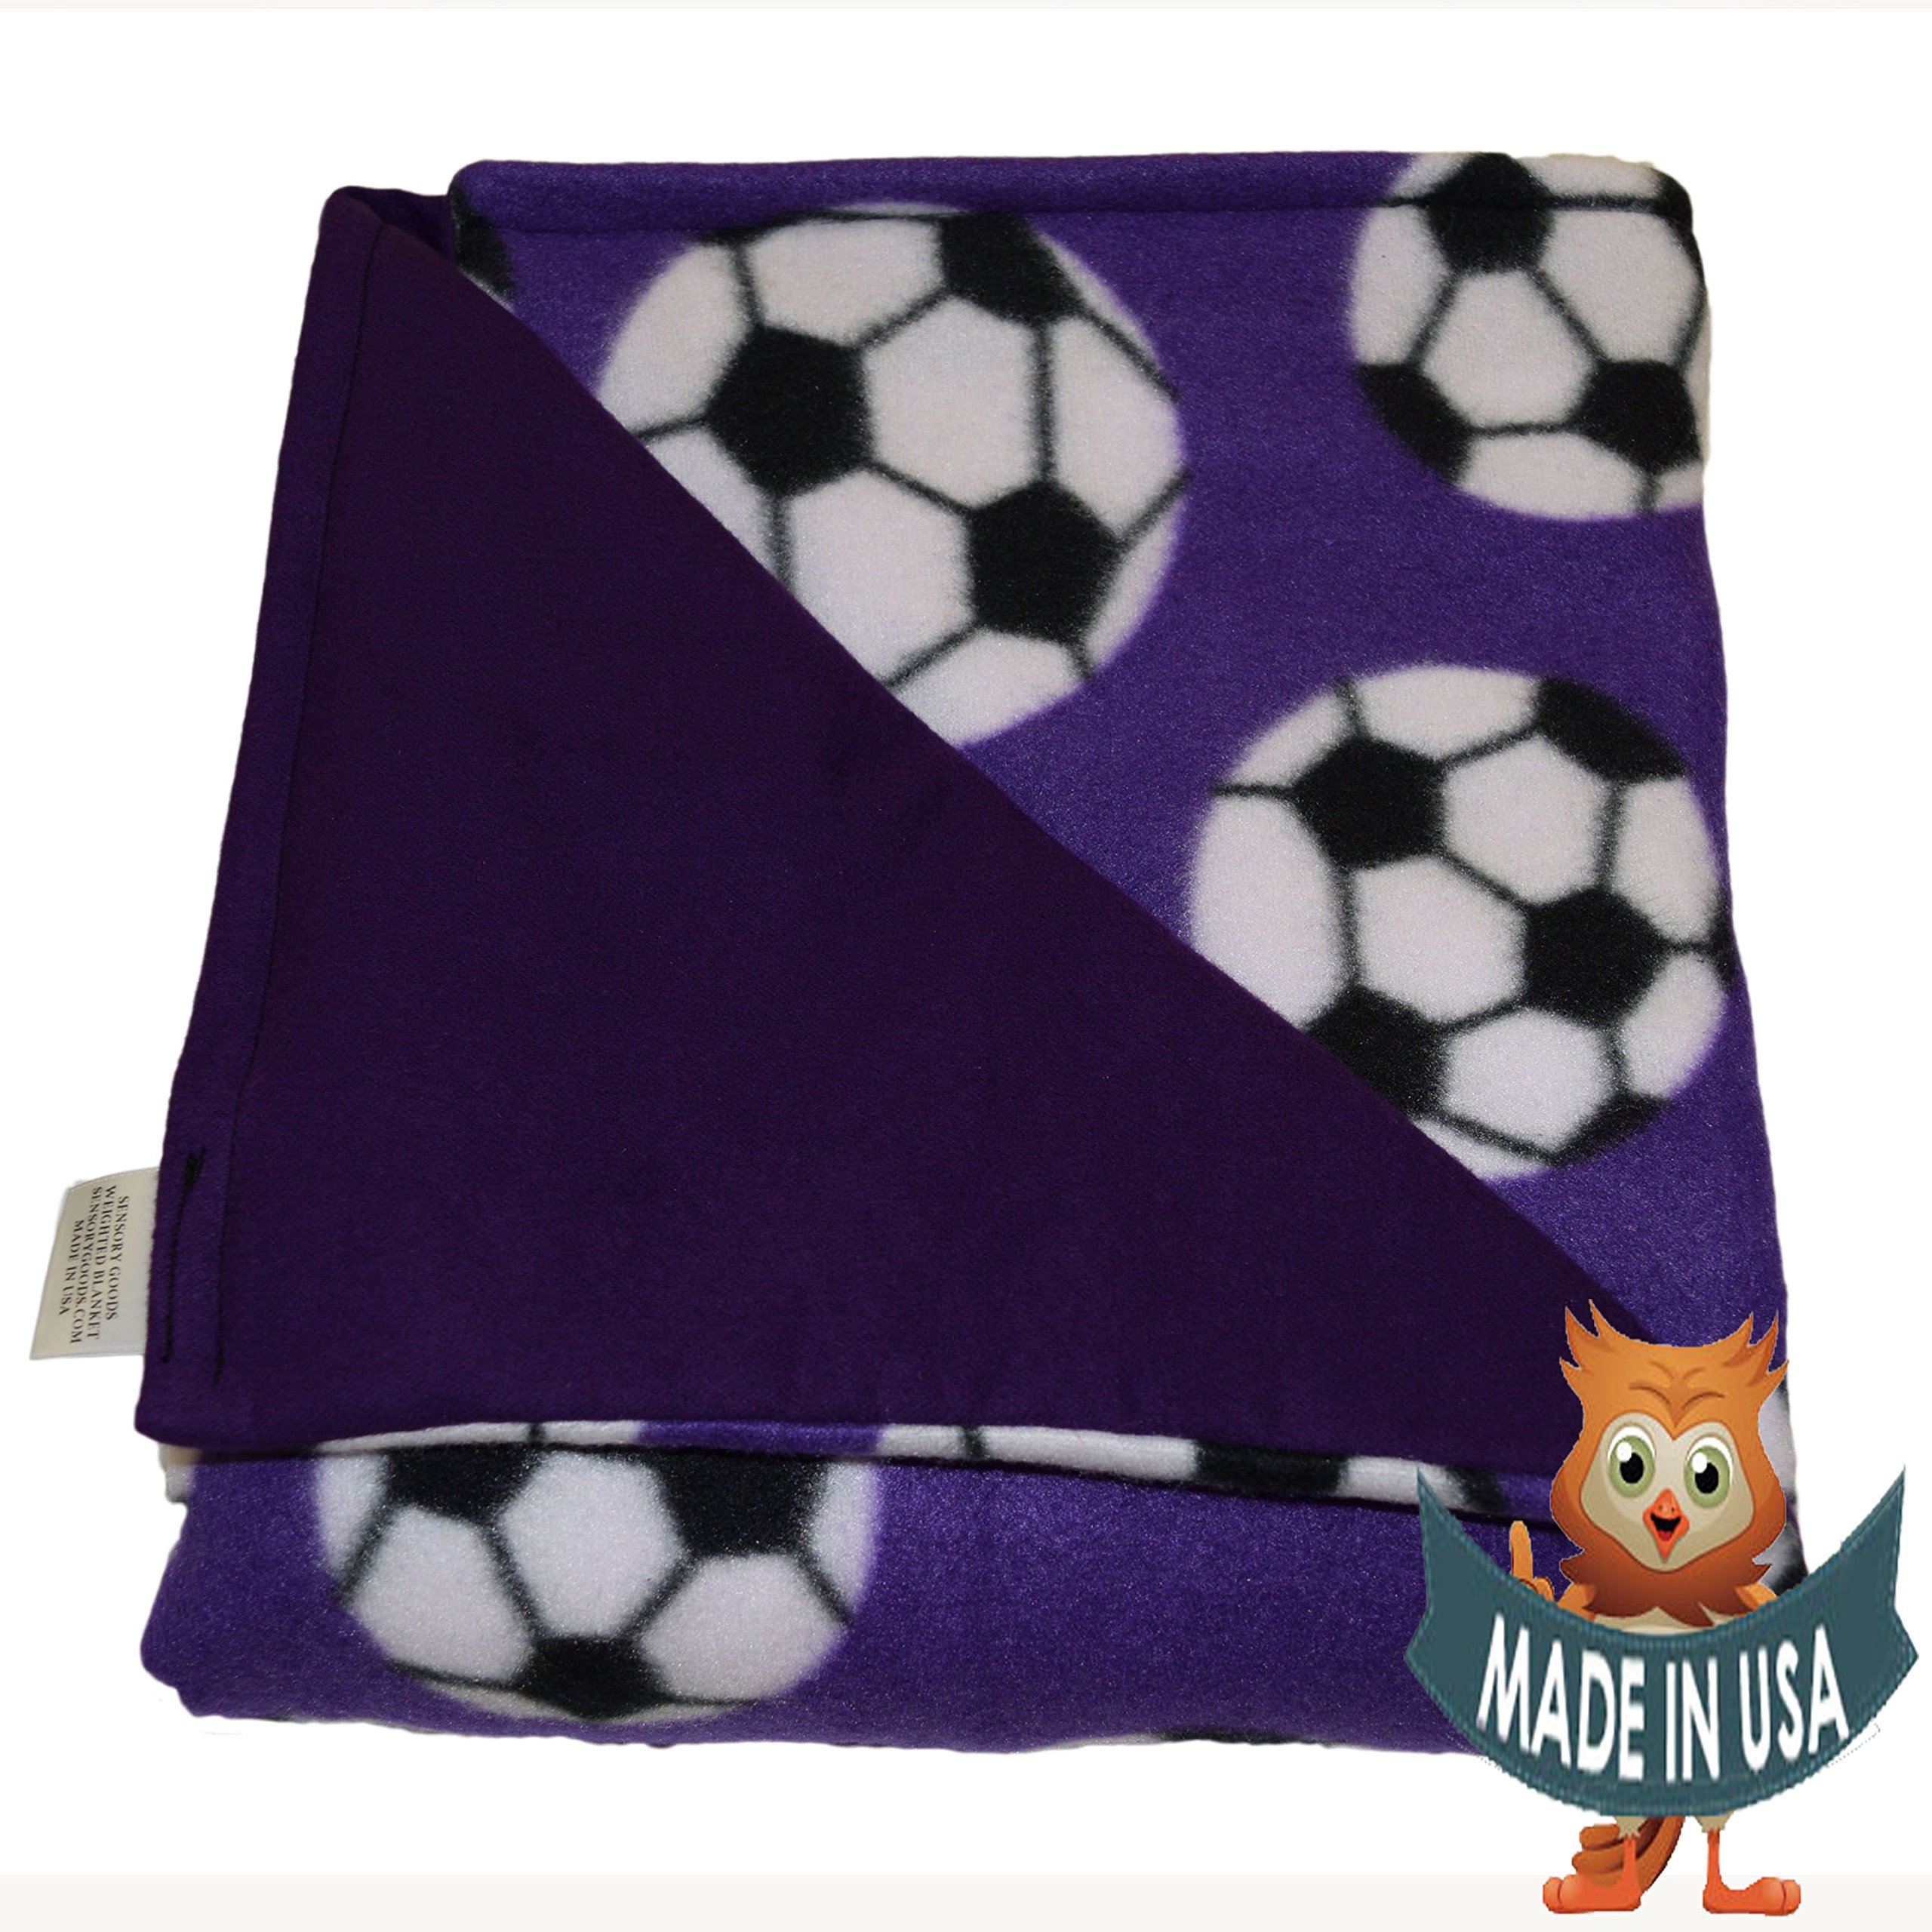 Young Adult Medium Weighted Blanket By Sensory Goods 9lb Low Pressure - Soccer Pattern with Purple - Fleece/Flannel (41'' x 58'')